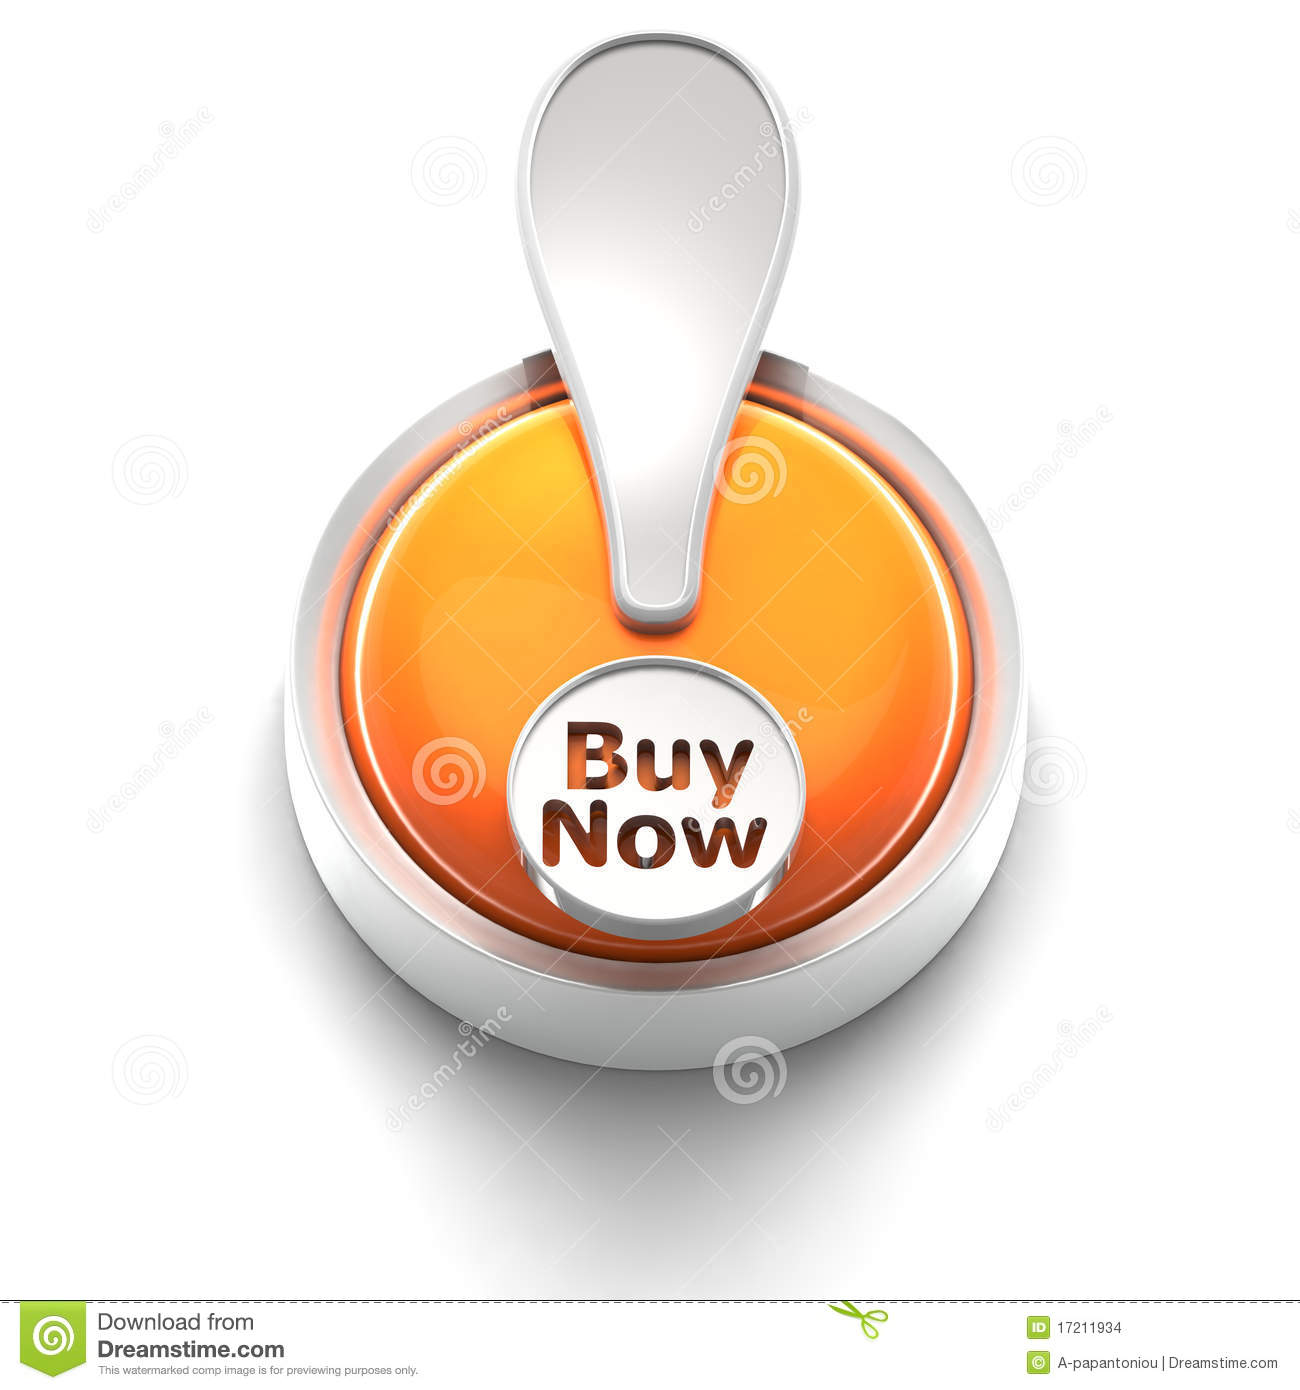 Buy It Now: Button Icon: Buy Now Stock Illustration. Illustration Of